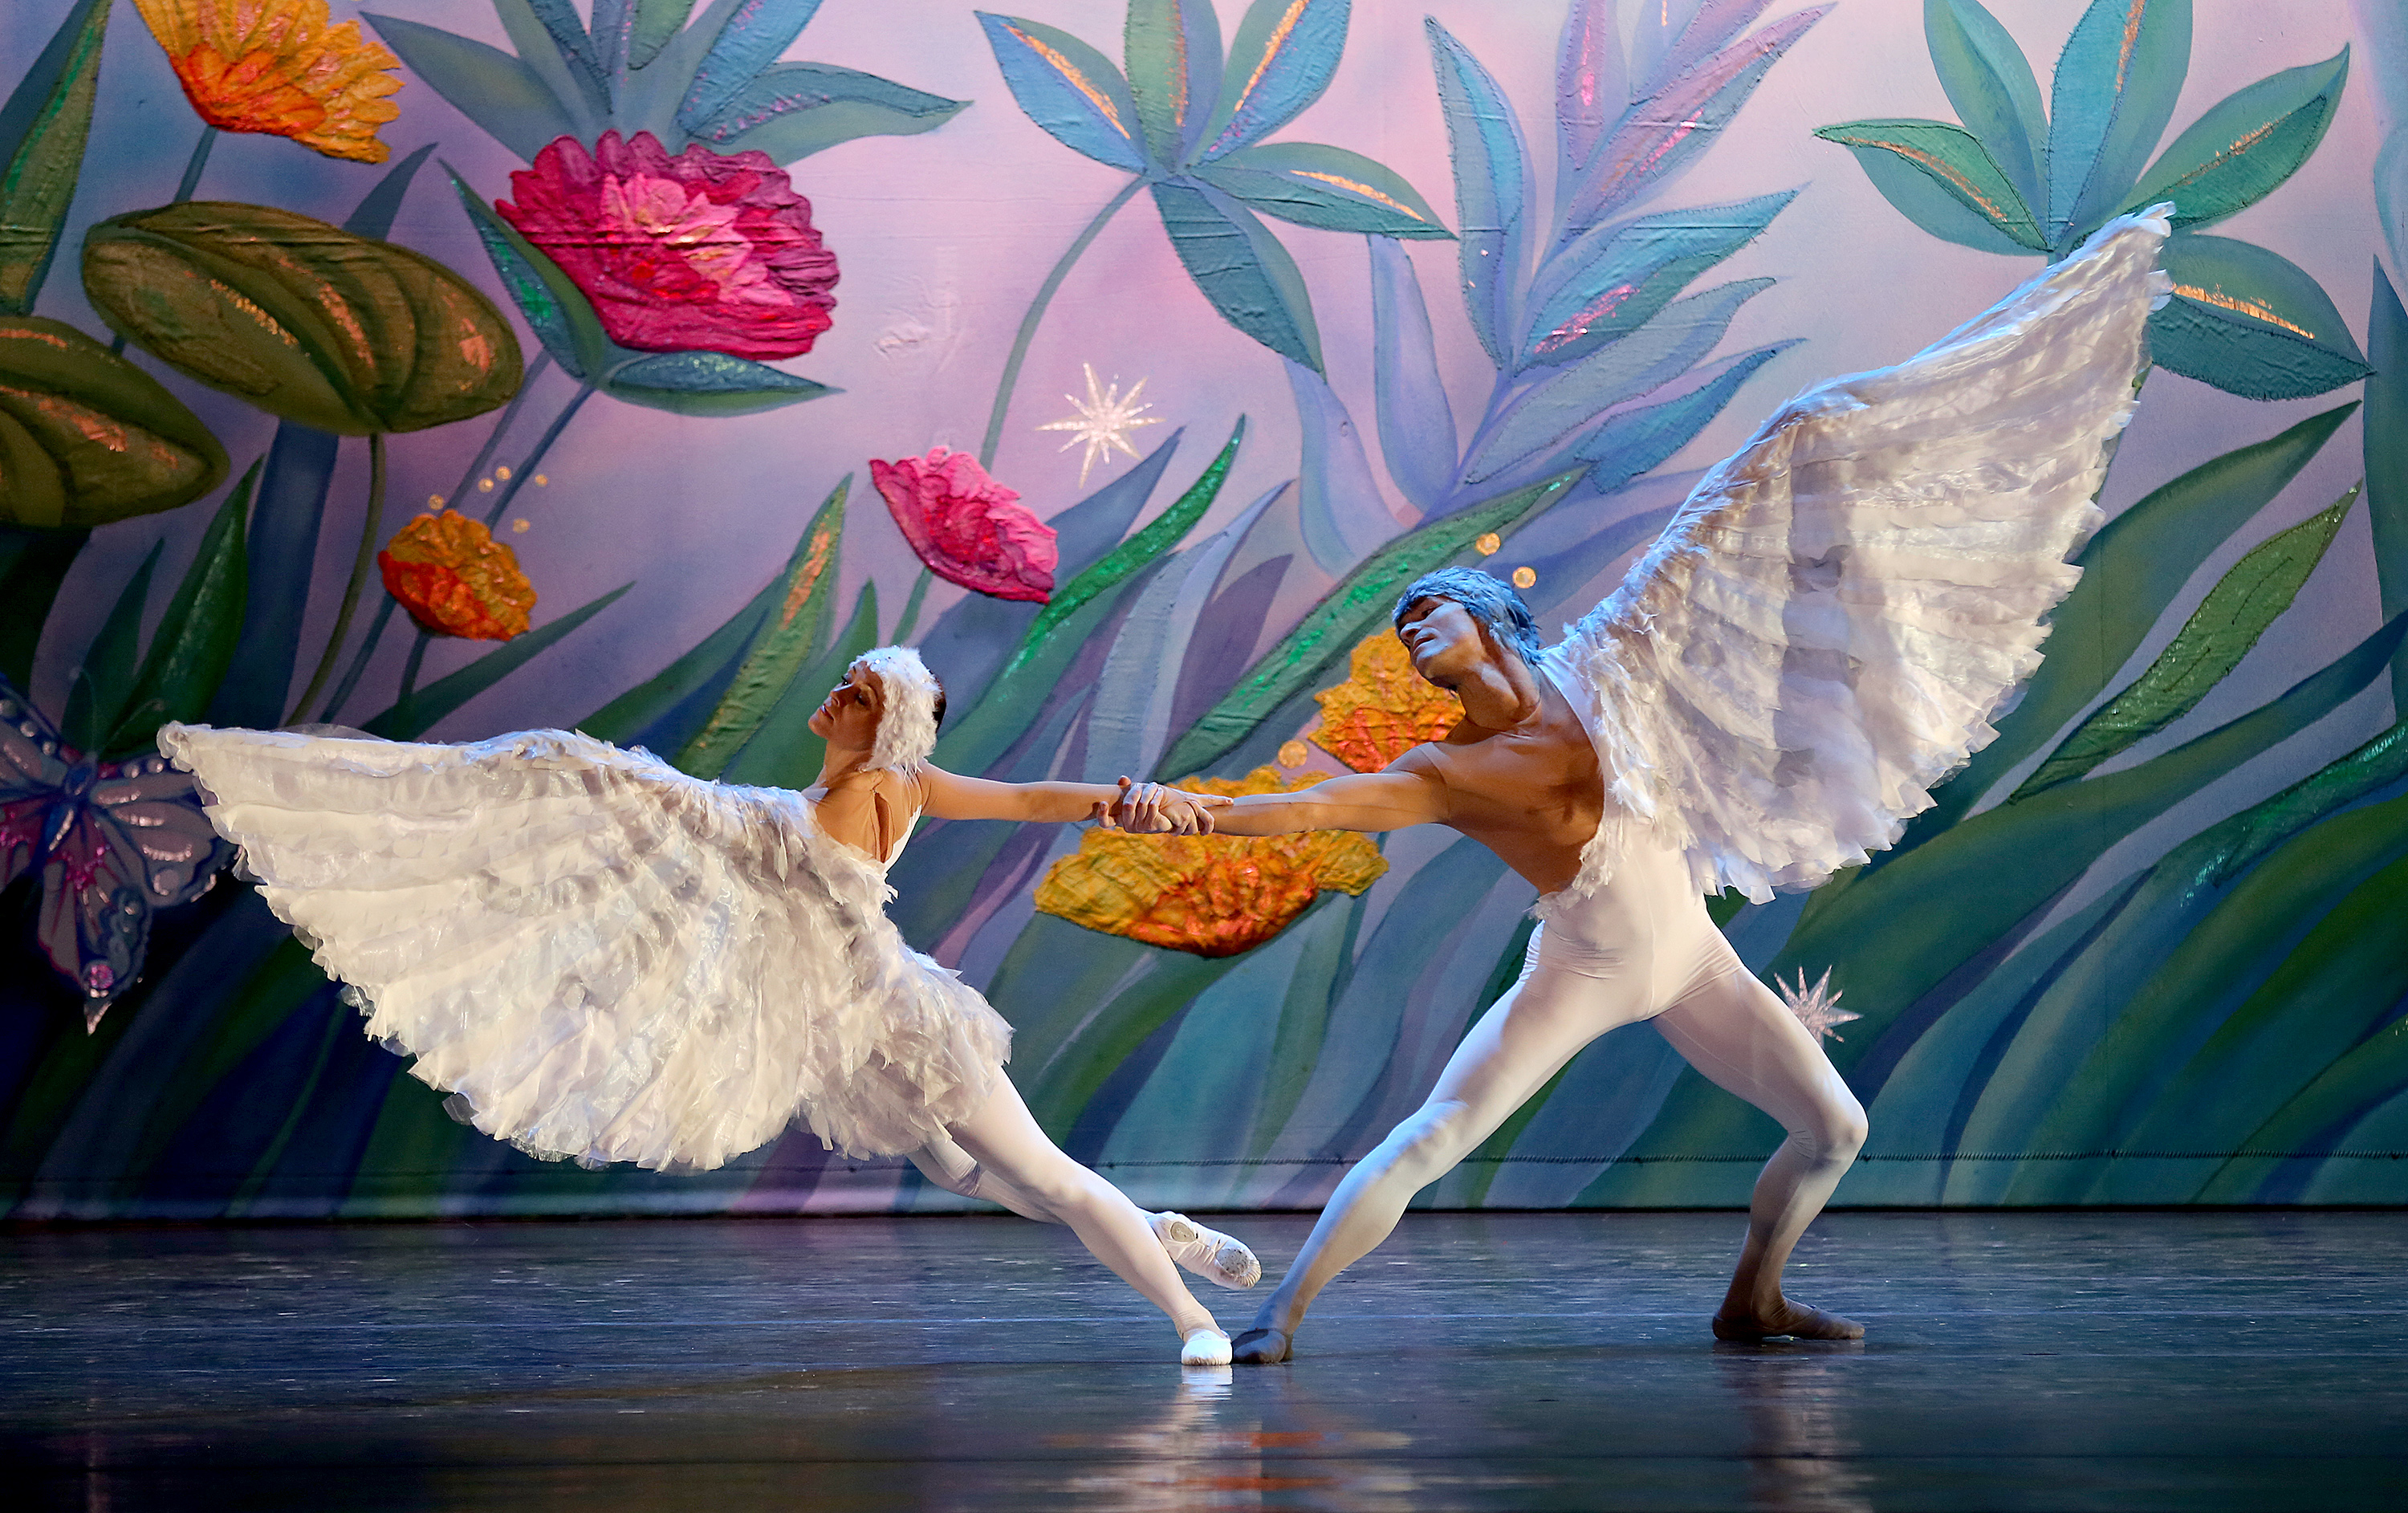 Moscow Ballet's Great Russian Nutcracker image 6